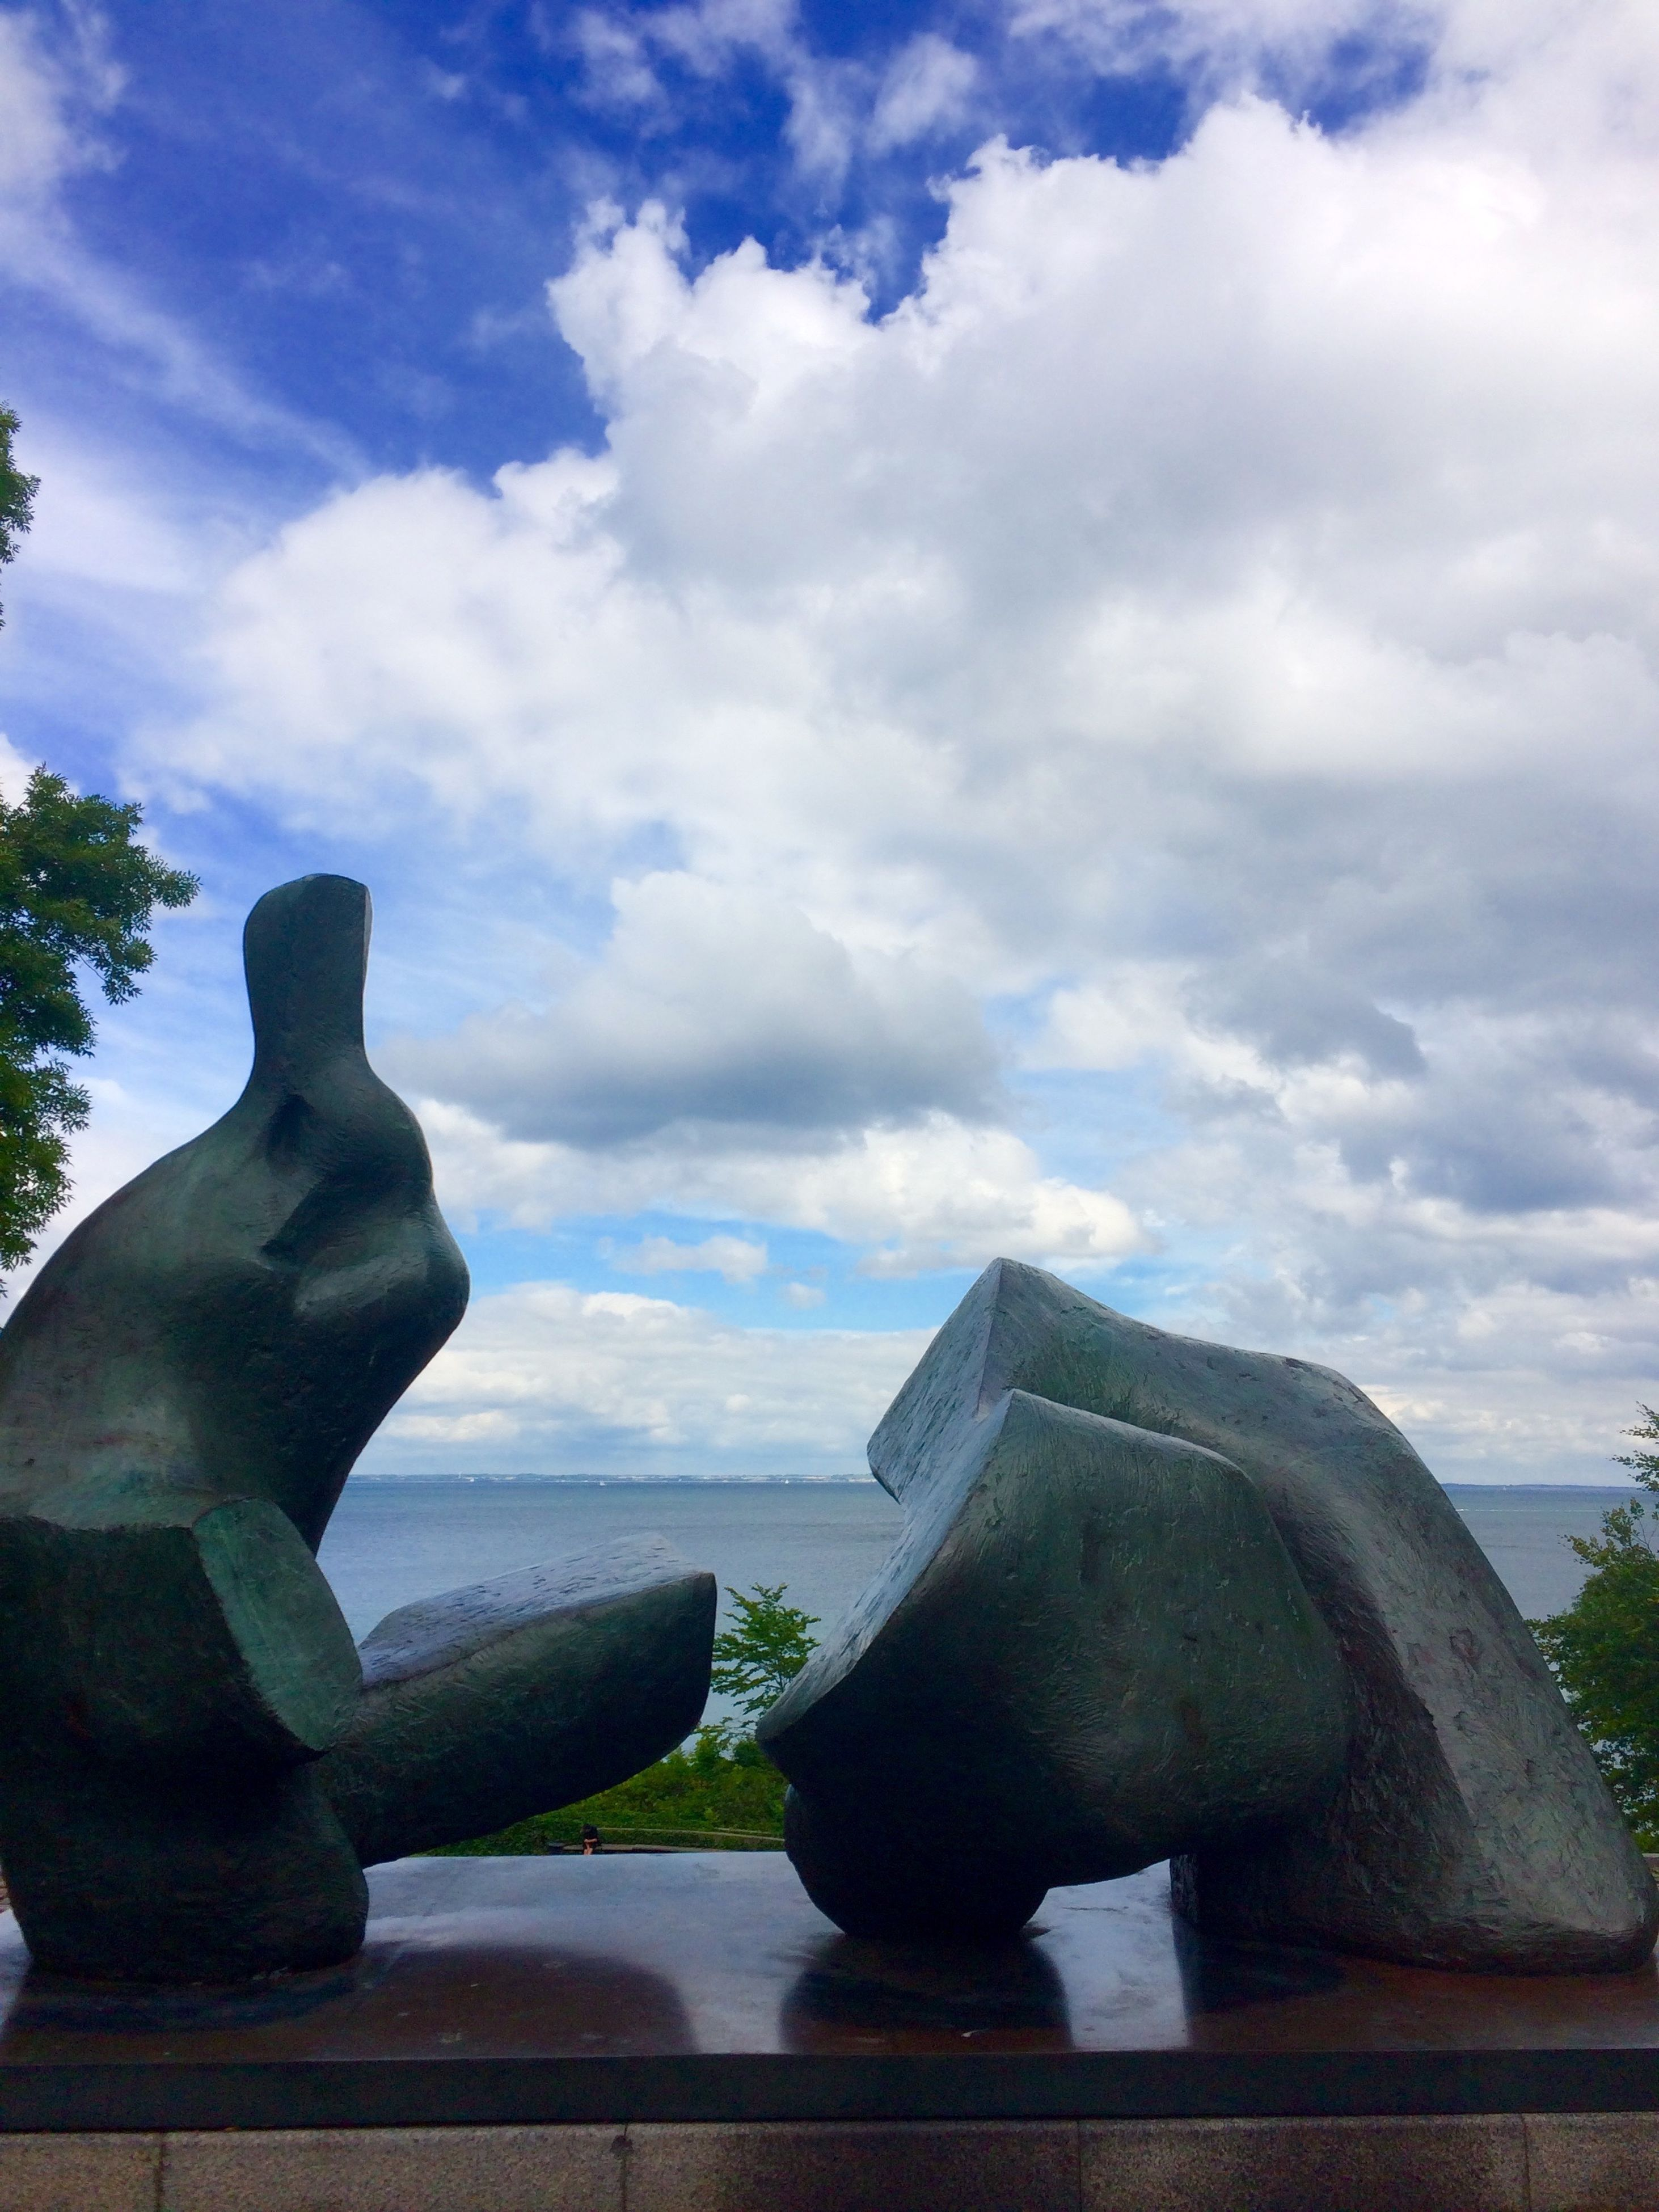 sculpture, statue, sky, art, cloud - sky, creativity, cloud, cloudy, day, nature, travel destinations, outdoors, buddha, tranquility, tourism, beauty in nature, no people, scenics, tranquil scene